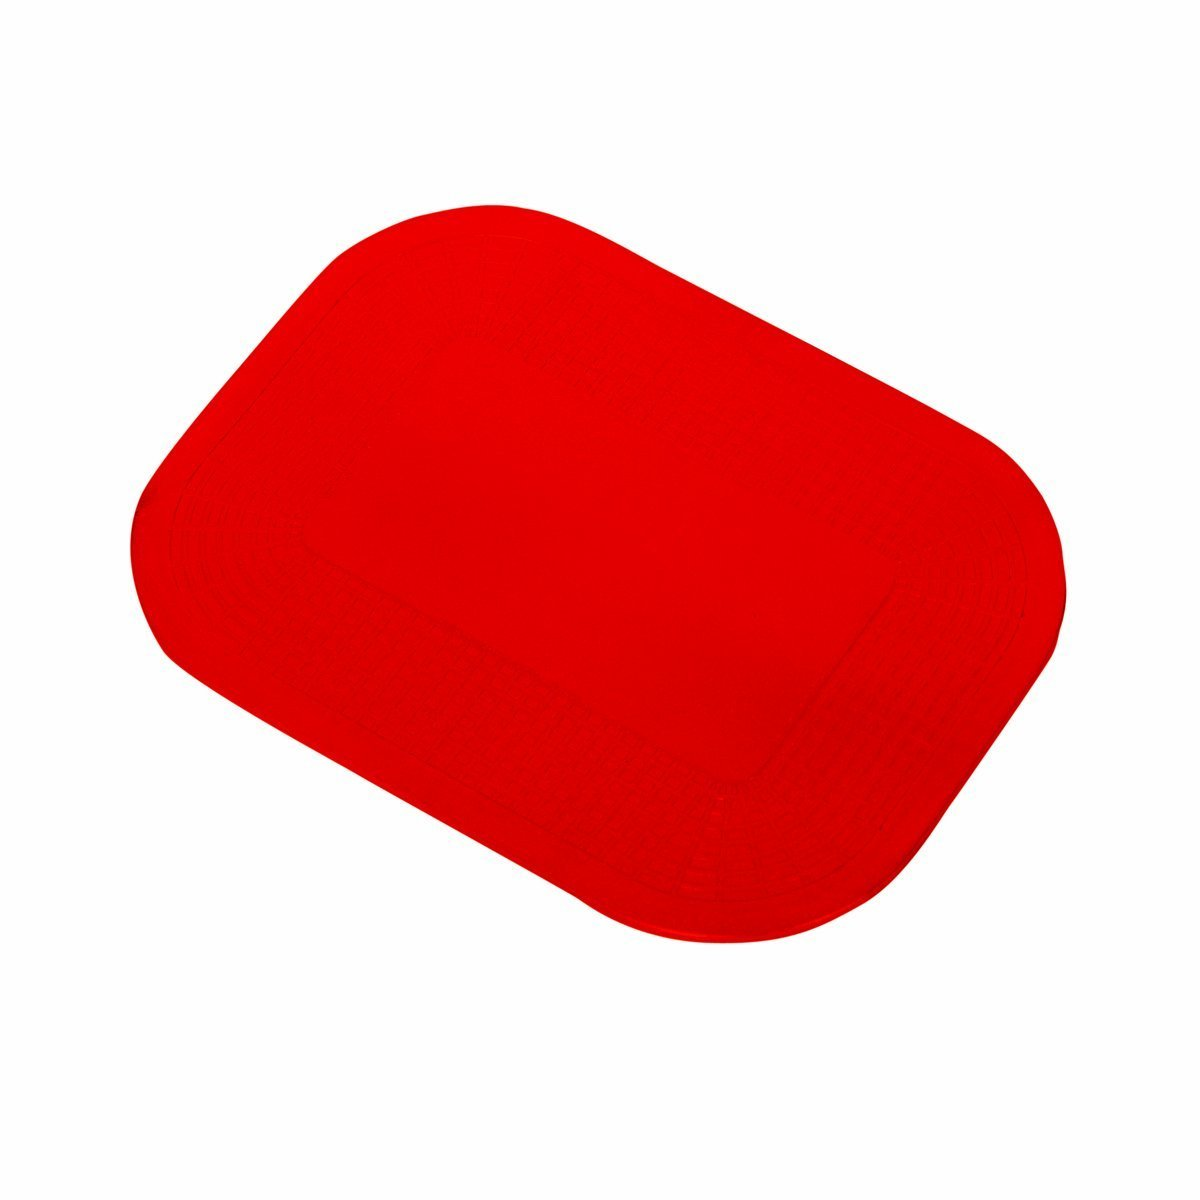 Dycem Non-Slip Mat - Rectangle 350x250mm (14x10'') - Red by NRS (Image #1)